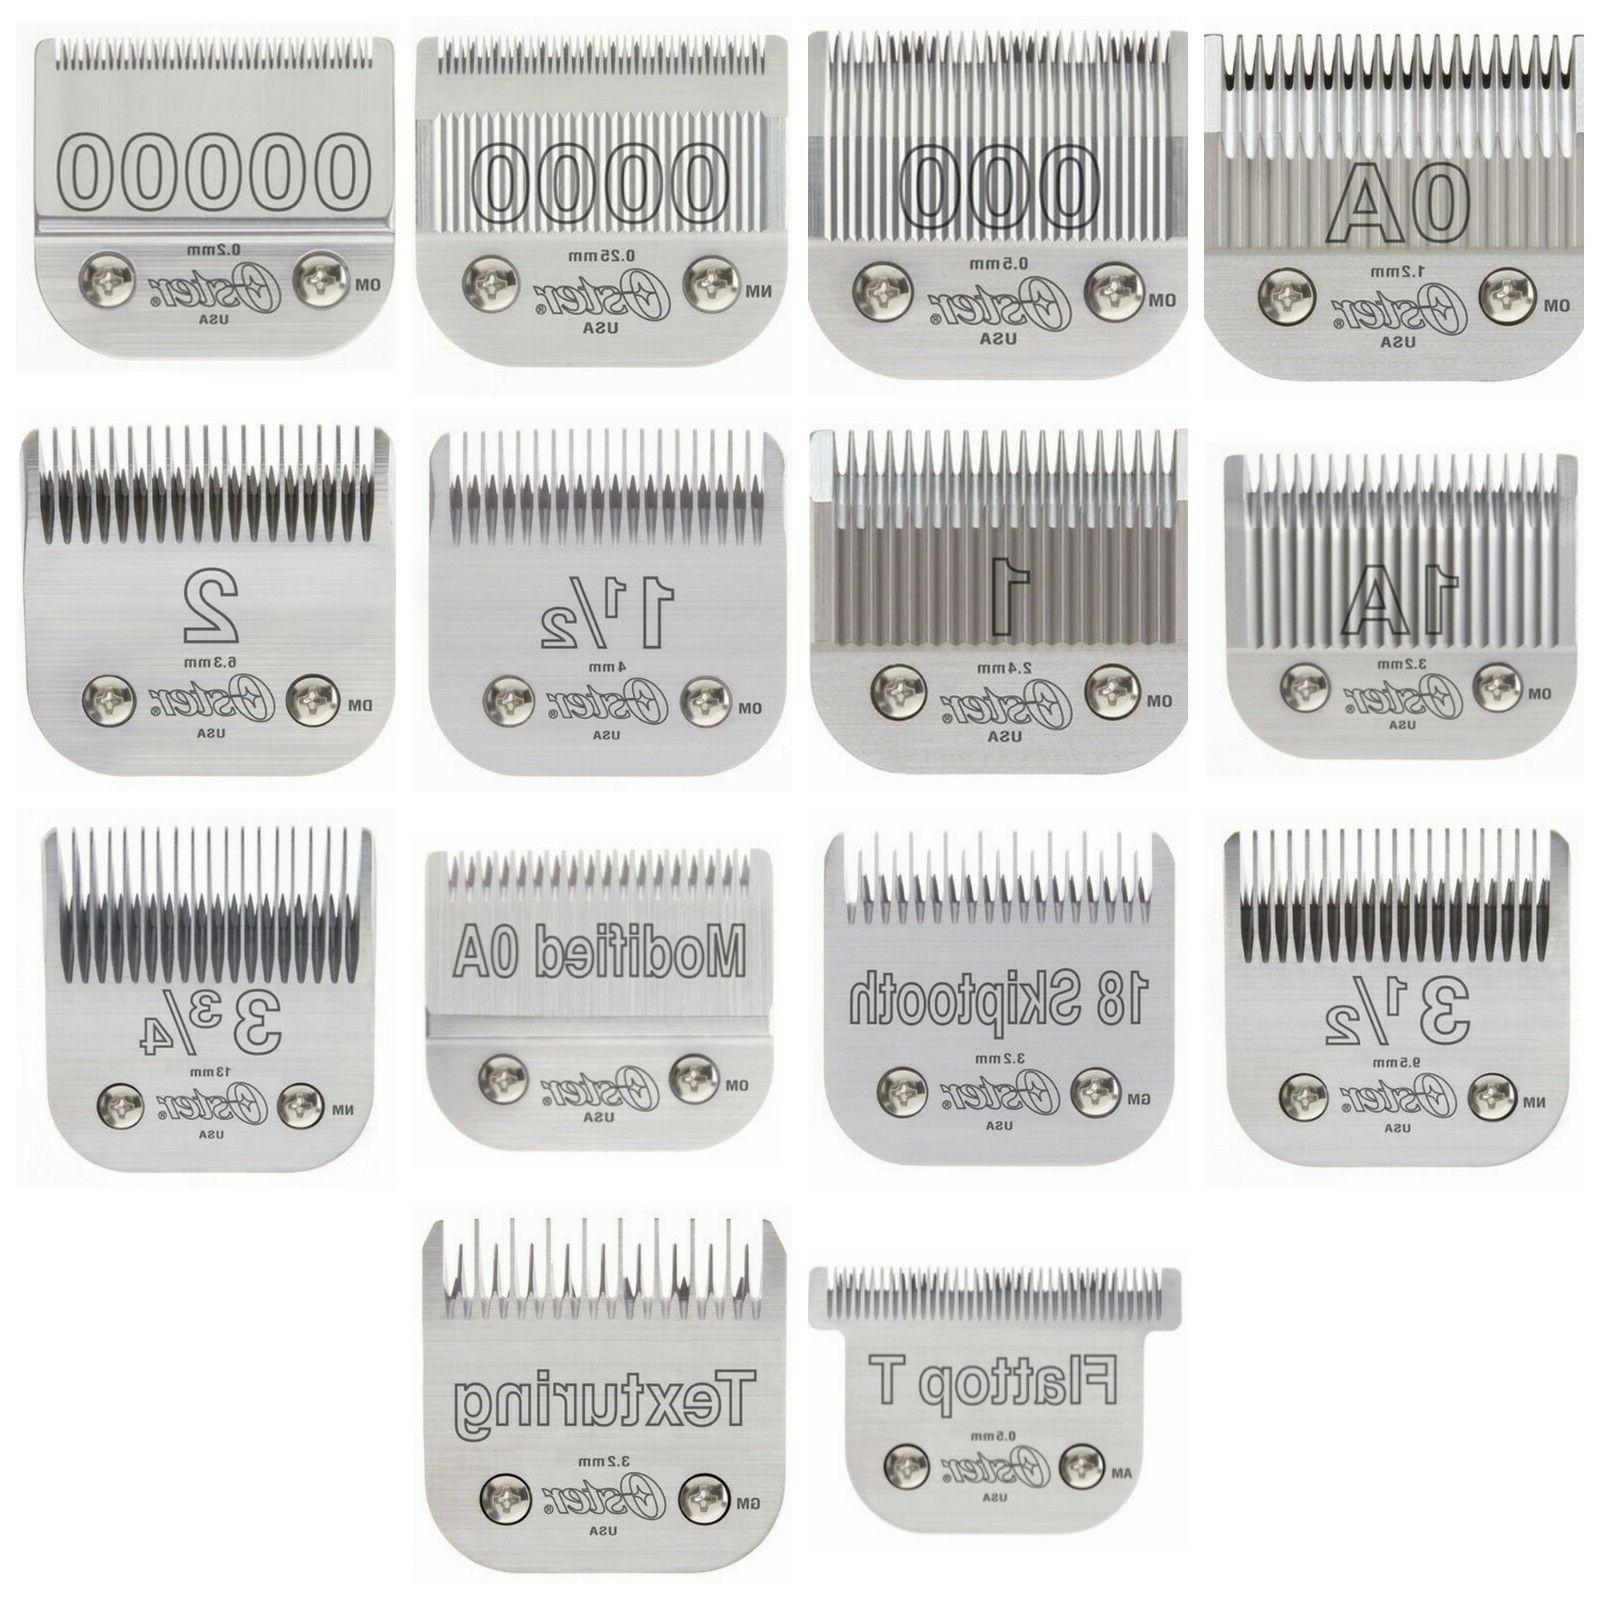 76 replacement clipper blades fits 76 pwrline